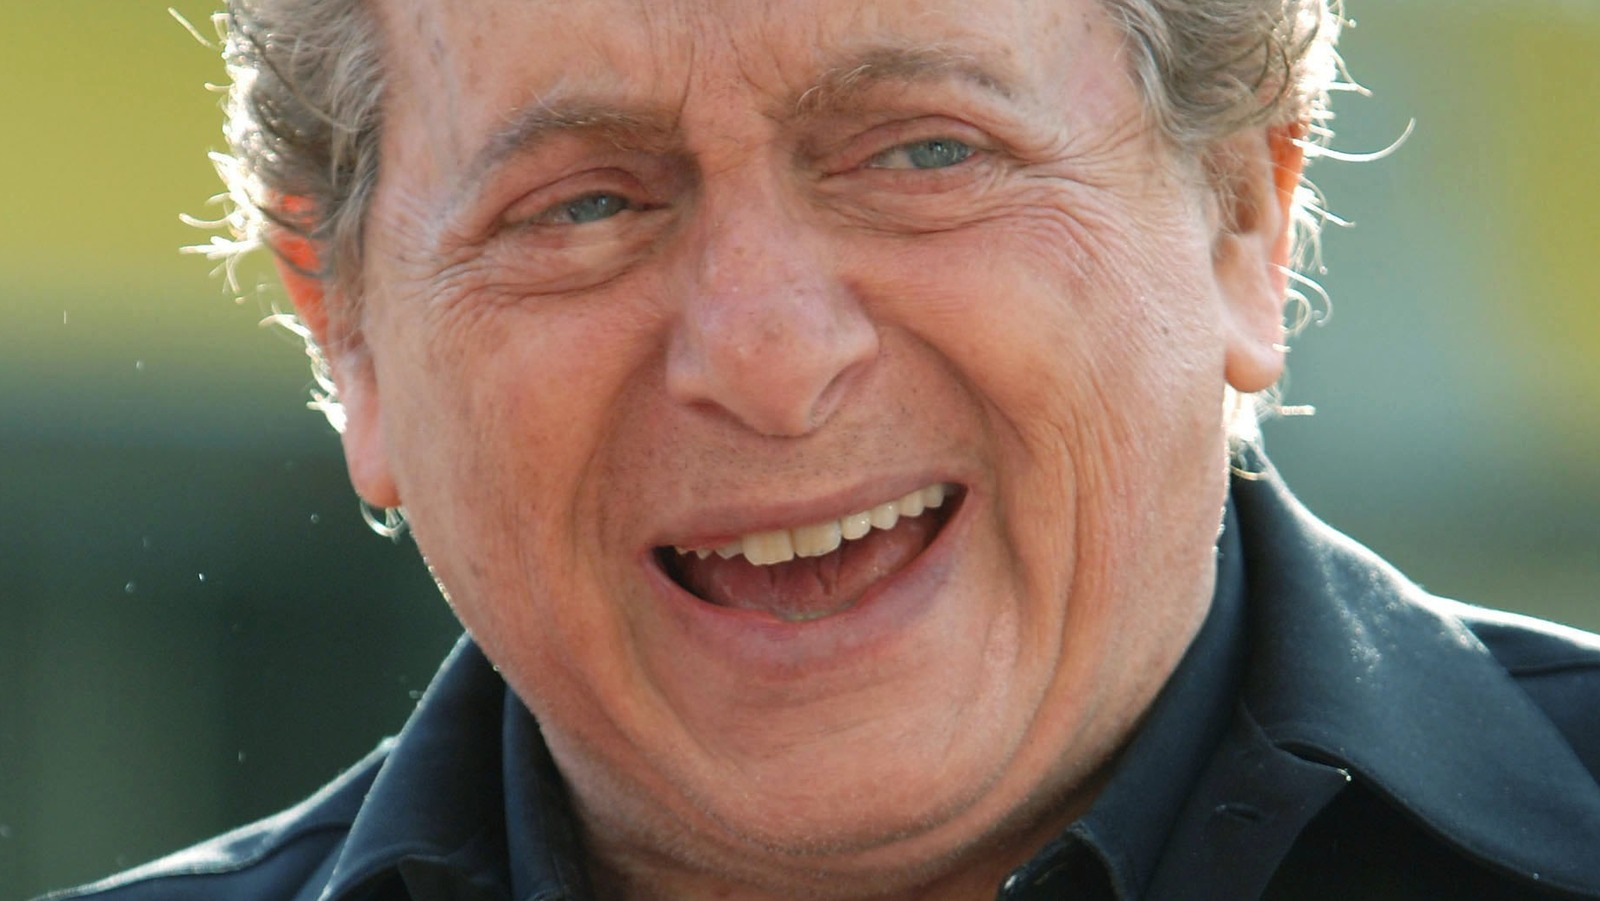 Jackie Mason's Net Worth: How Much Was The Comedian Worth When He Died?